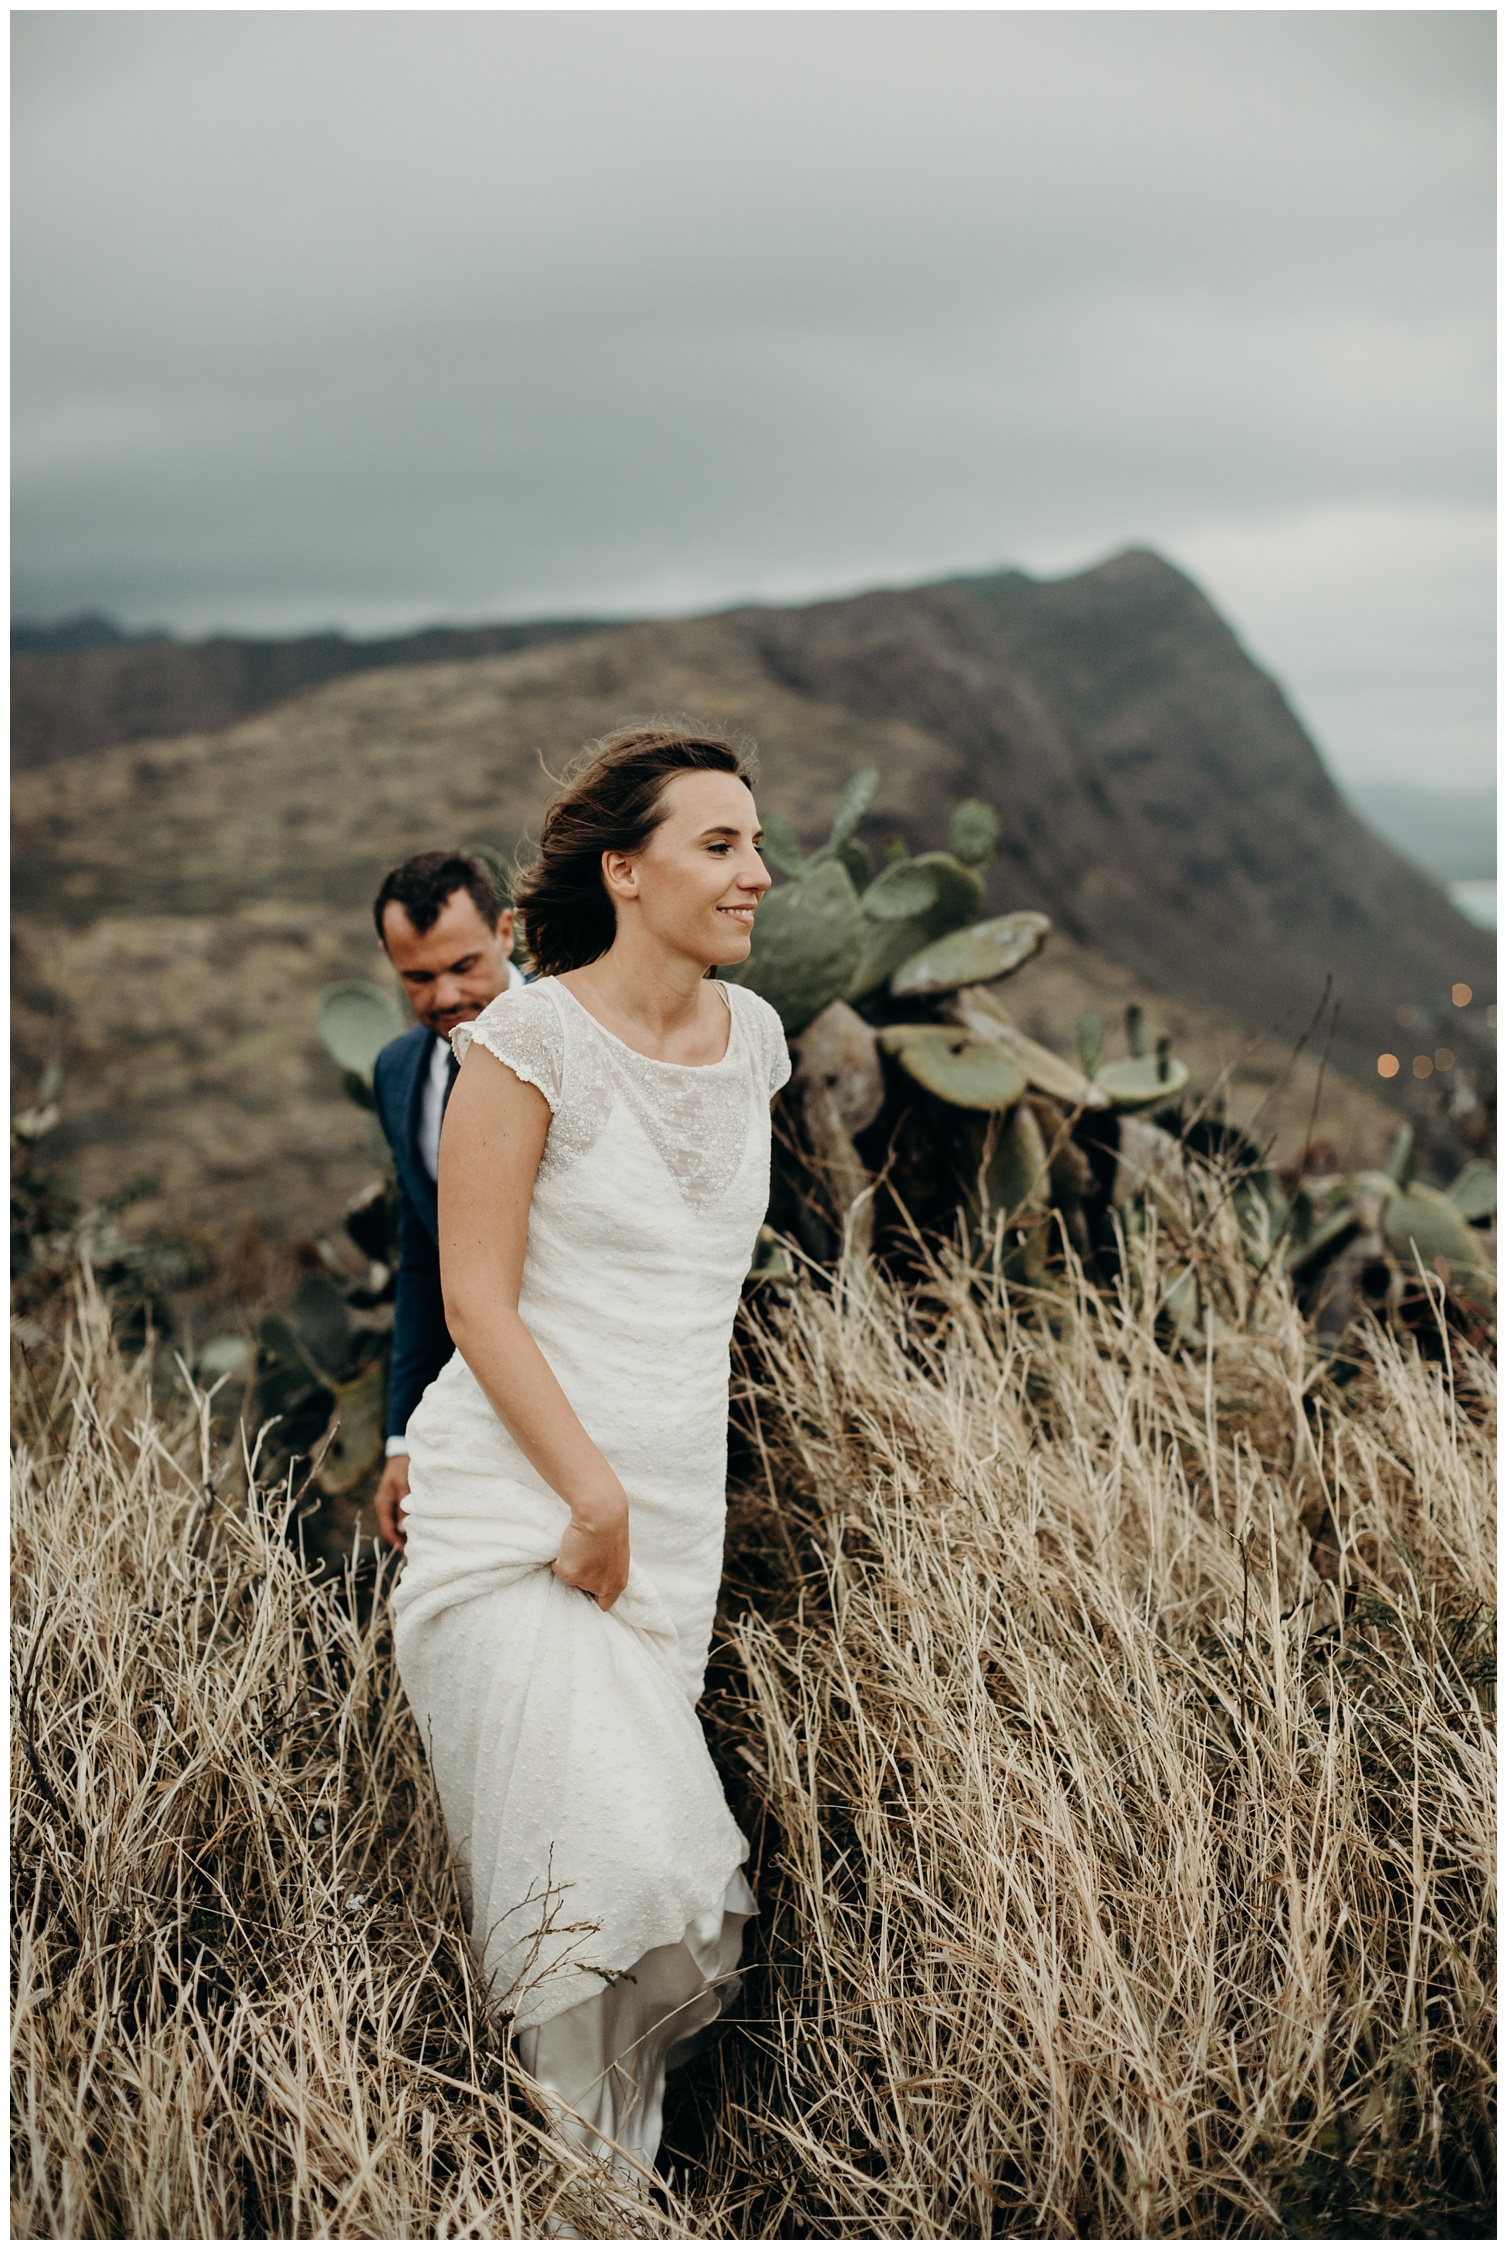 Hawaii-Wedding-Photographer-Keani-Bakula-Turtle-Bay_0046.jpg